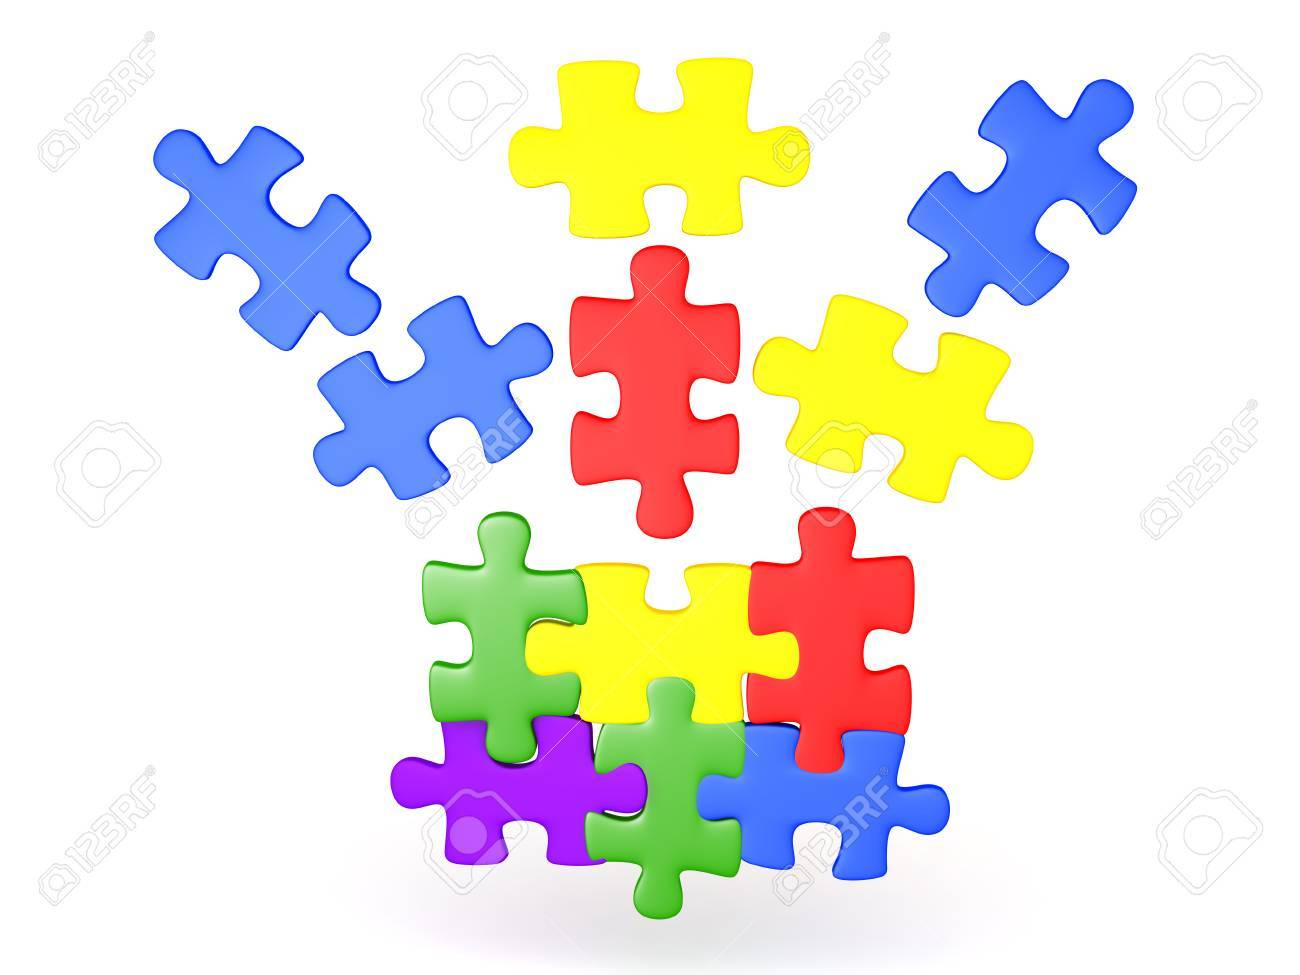 3d illustration of jigsaw puzzle pieces falling into place the